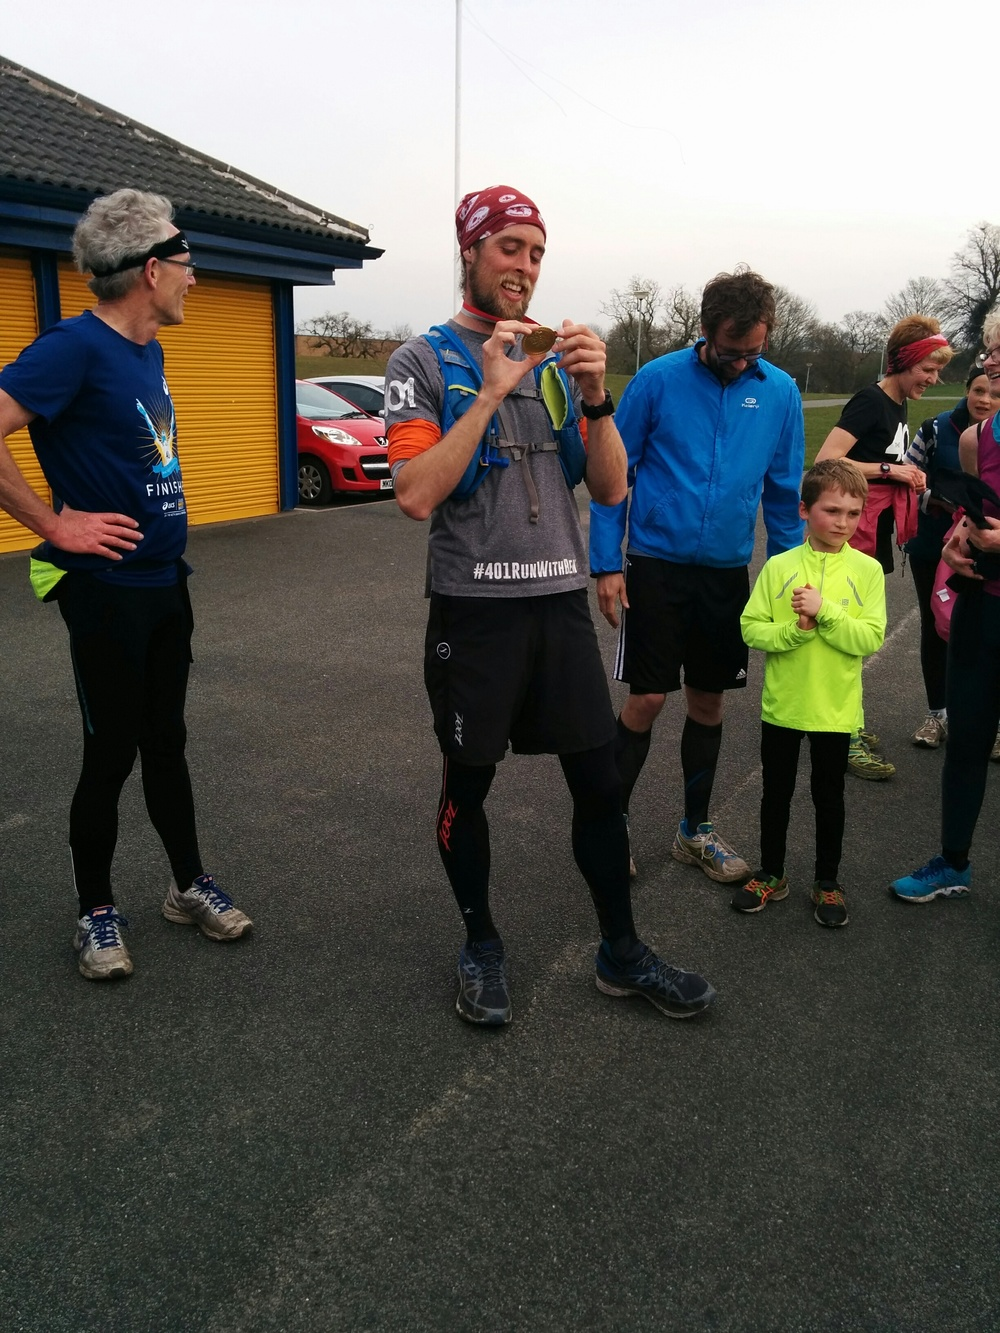 Ben accepting his post run medal